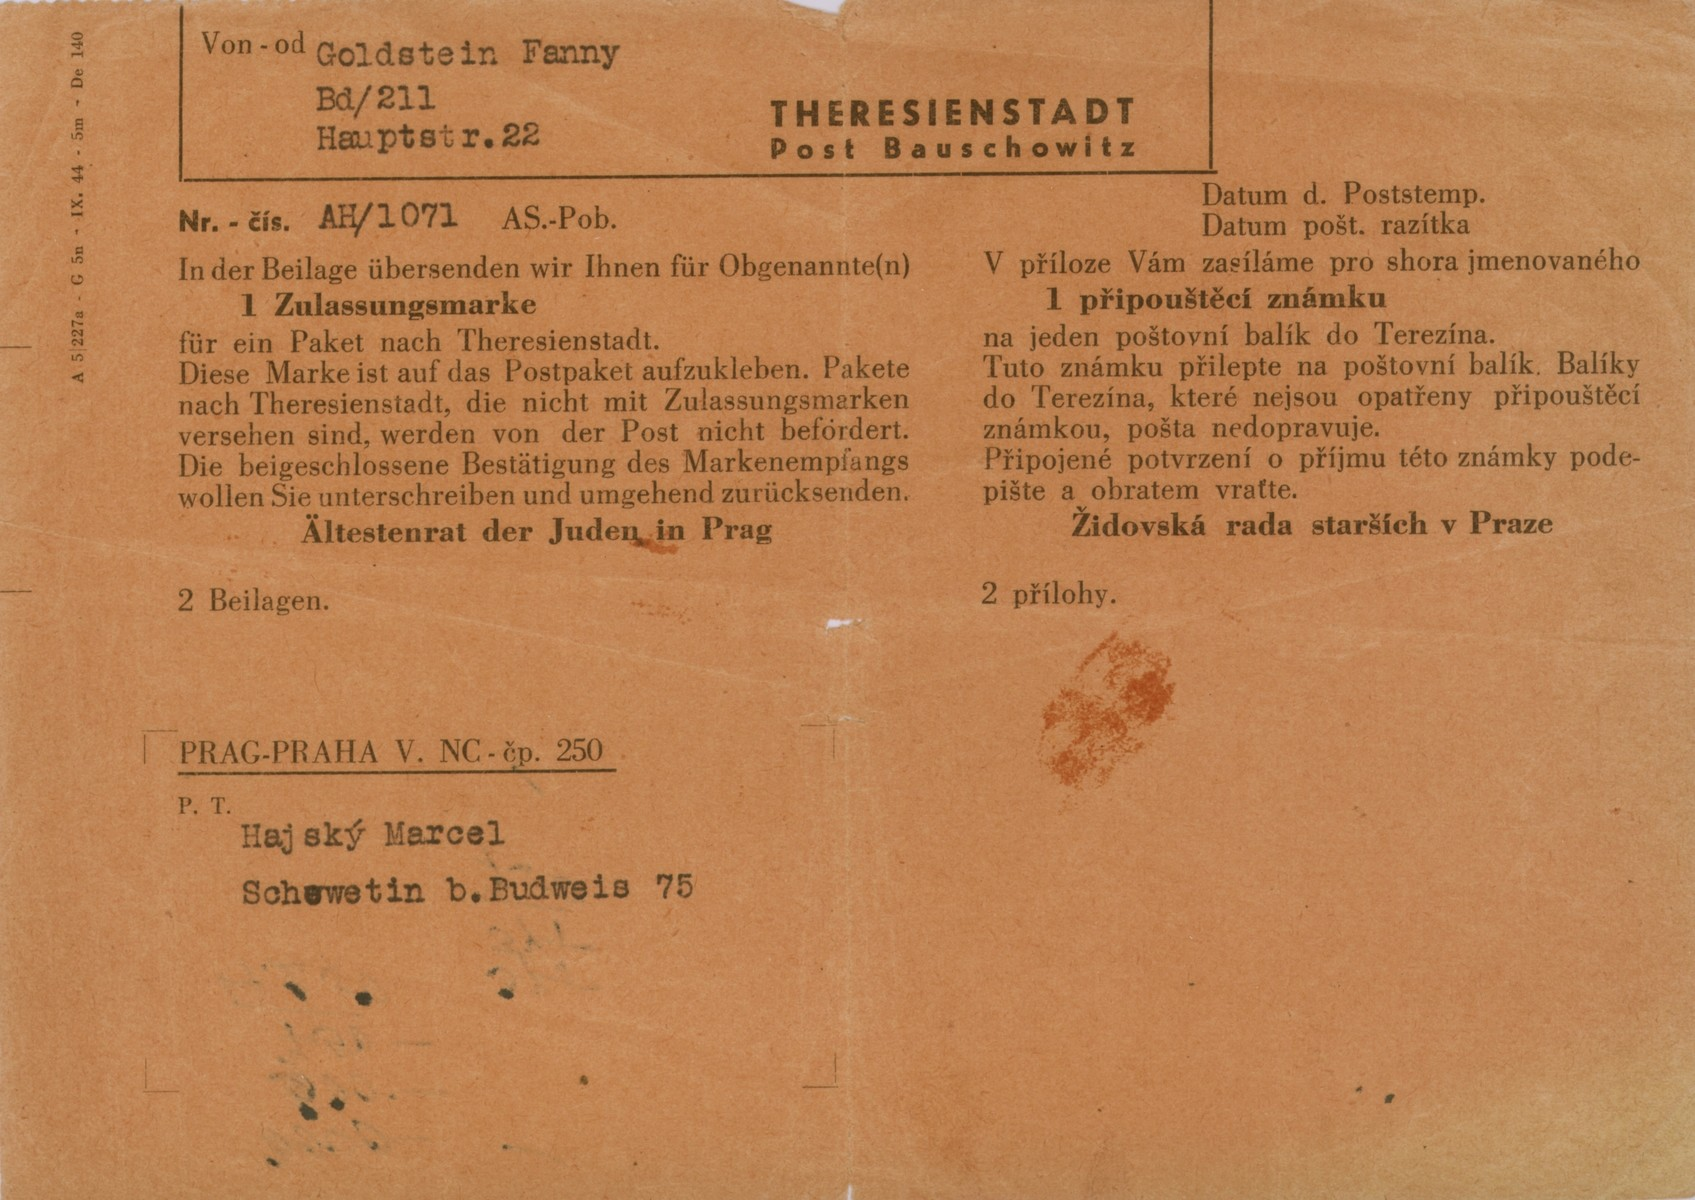 A notice bearing a special stamp that was sent to Marcel Hajsky by the Prague Jewish Council, instructing him how to send a care package to his grandmother, Fanny Goldstein, who was interned in the Theresienstadt concentration camp.  The enclosed stamp had to be attached to any package that was sent to the camp.    Marcel and his brother, Jan, were able to escape deportation because their father, Cenek Hajsky, was not Jewish.